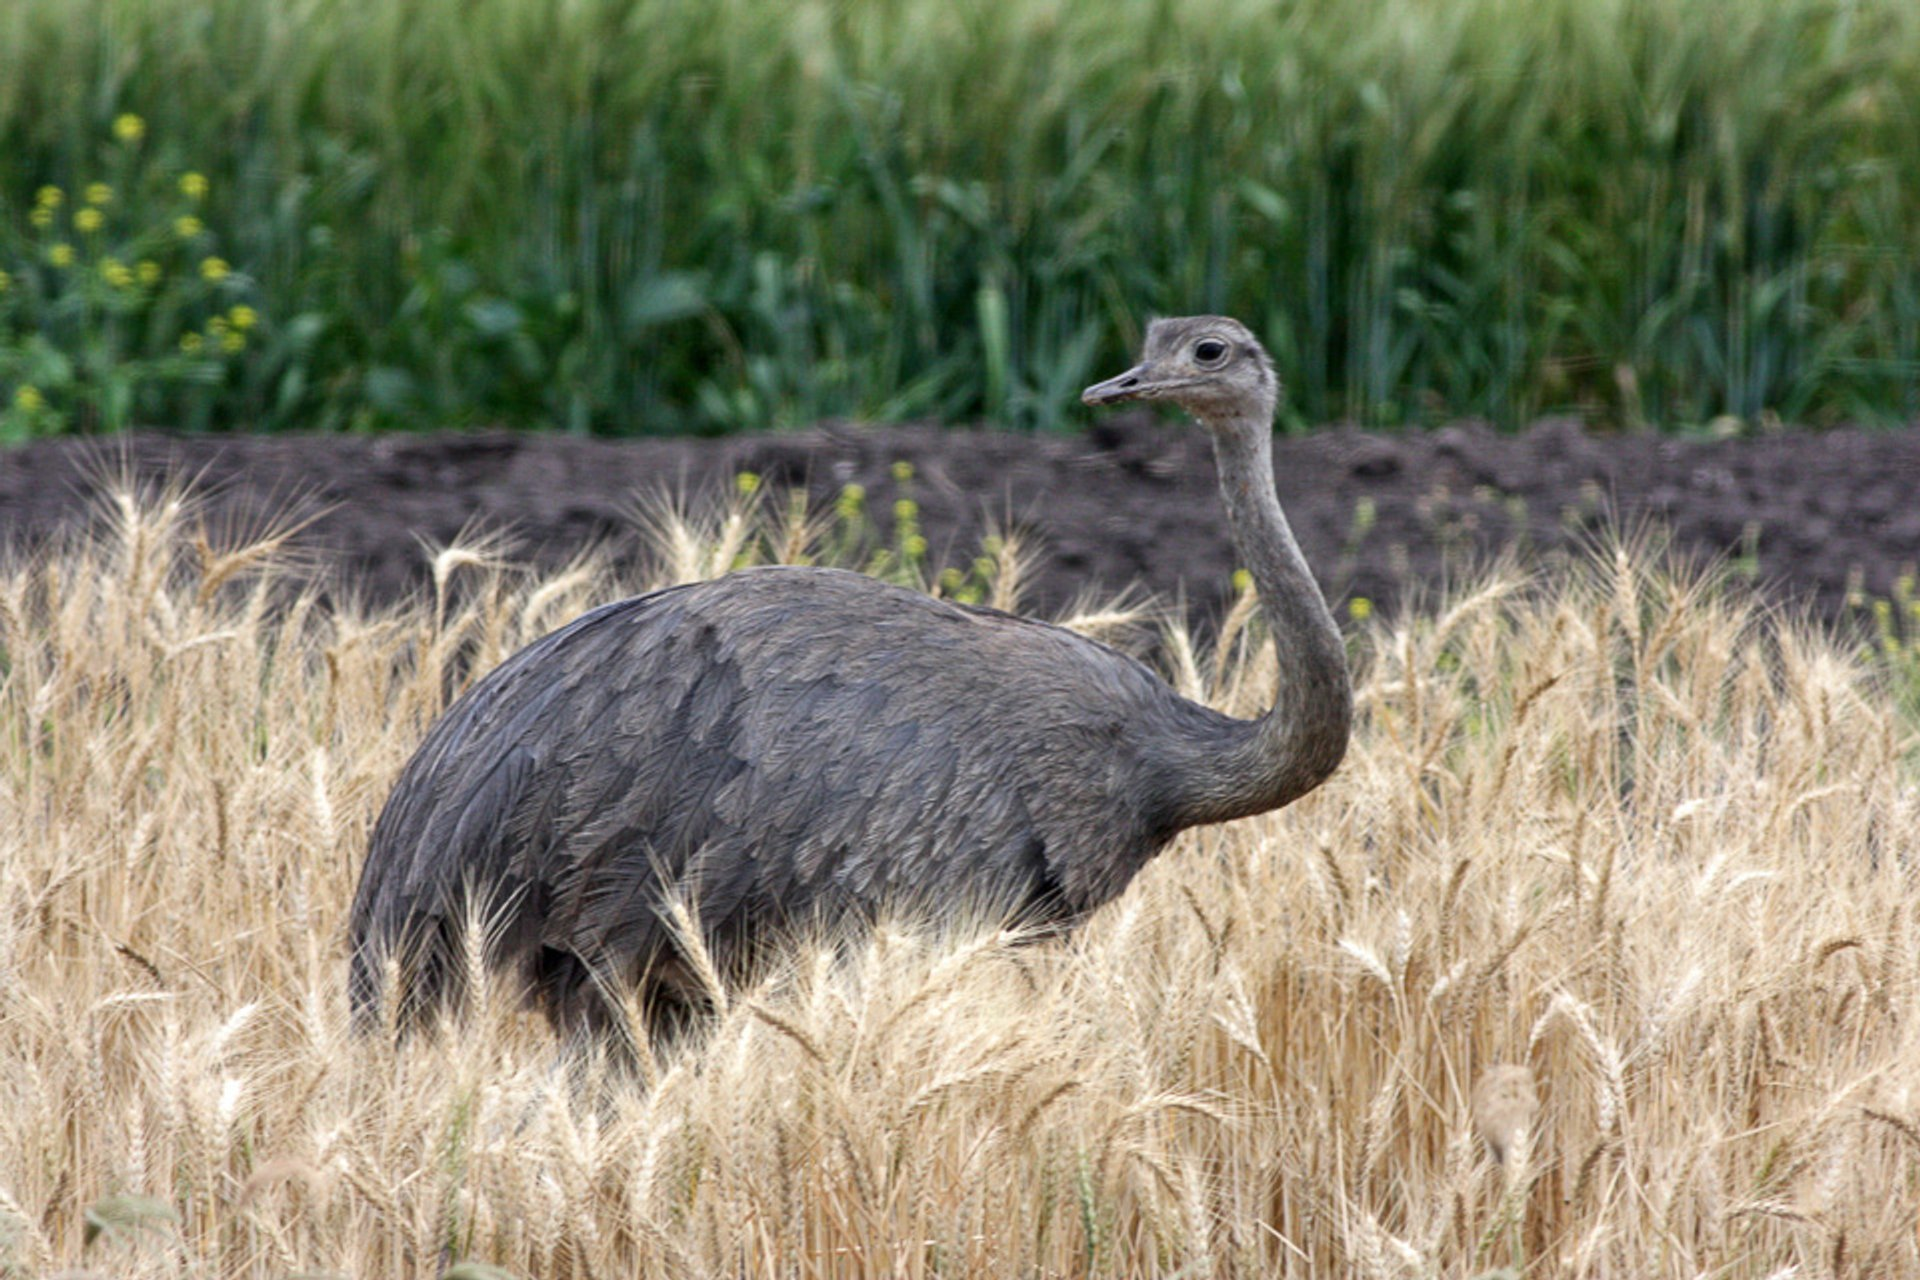 Greater Rhea in Argentina 2020 - Best Time